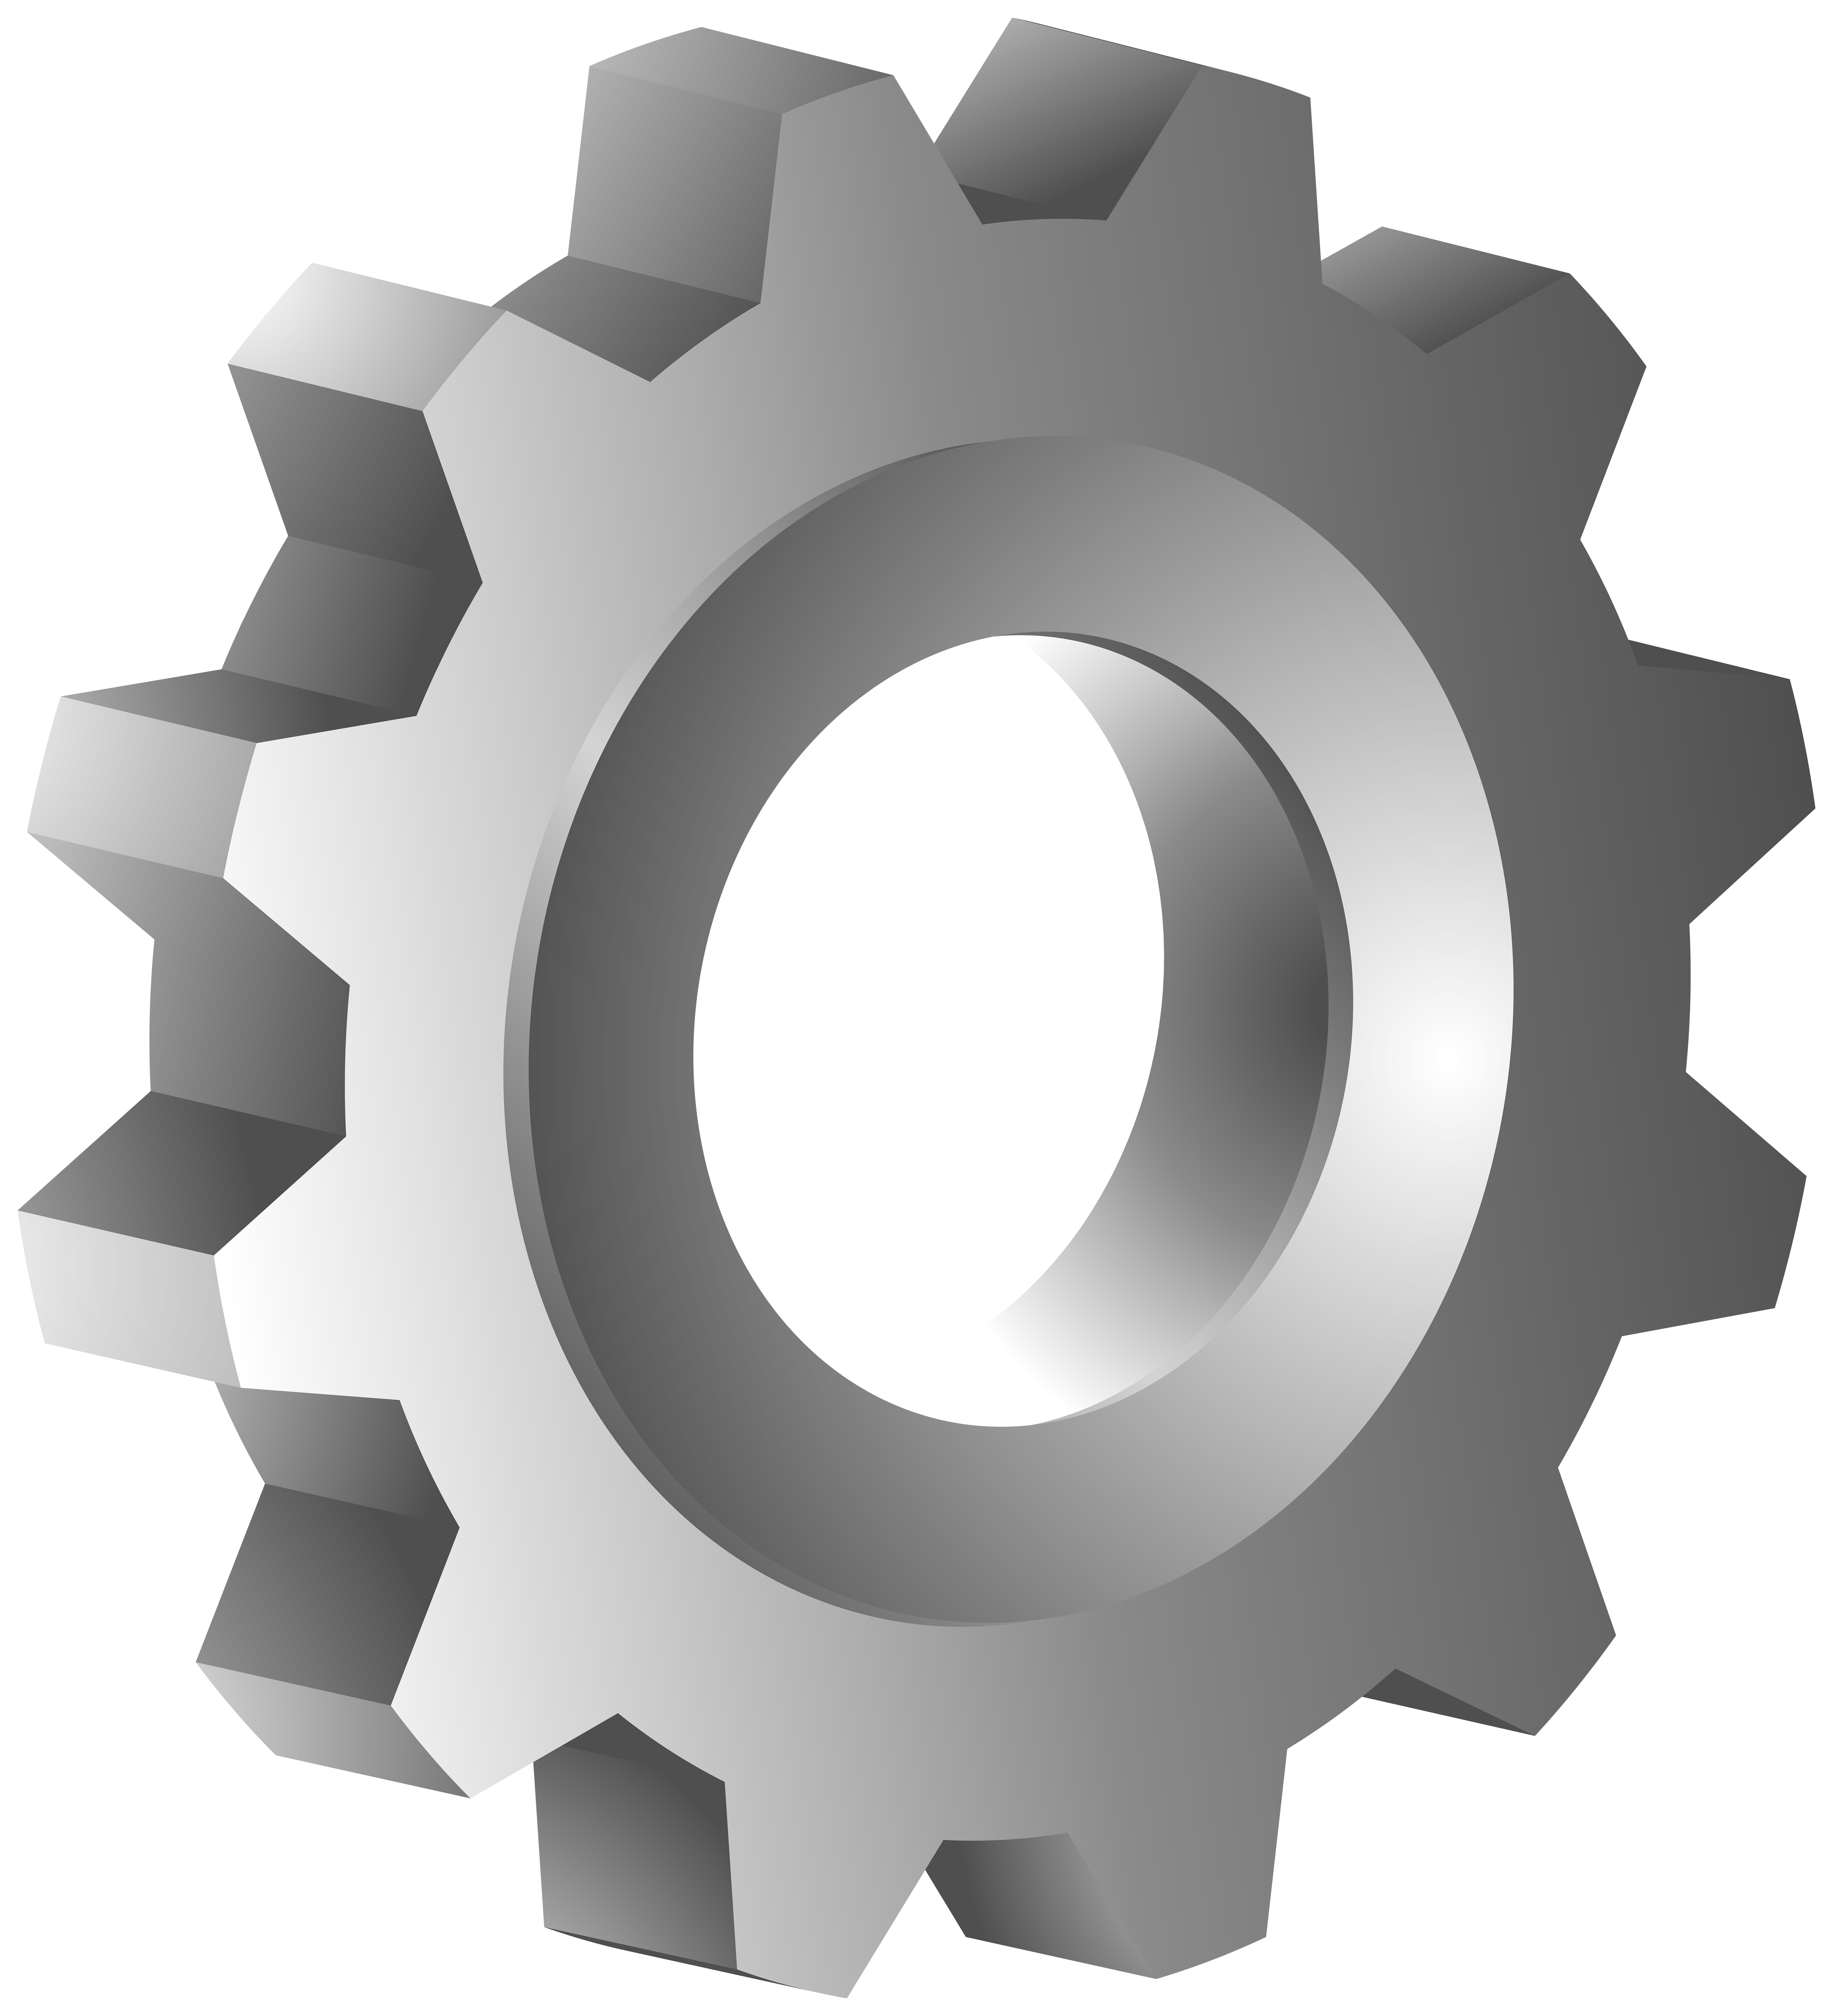 Gear PNG Clipart.